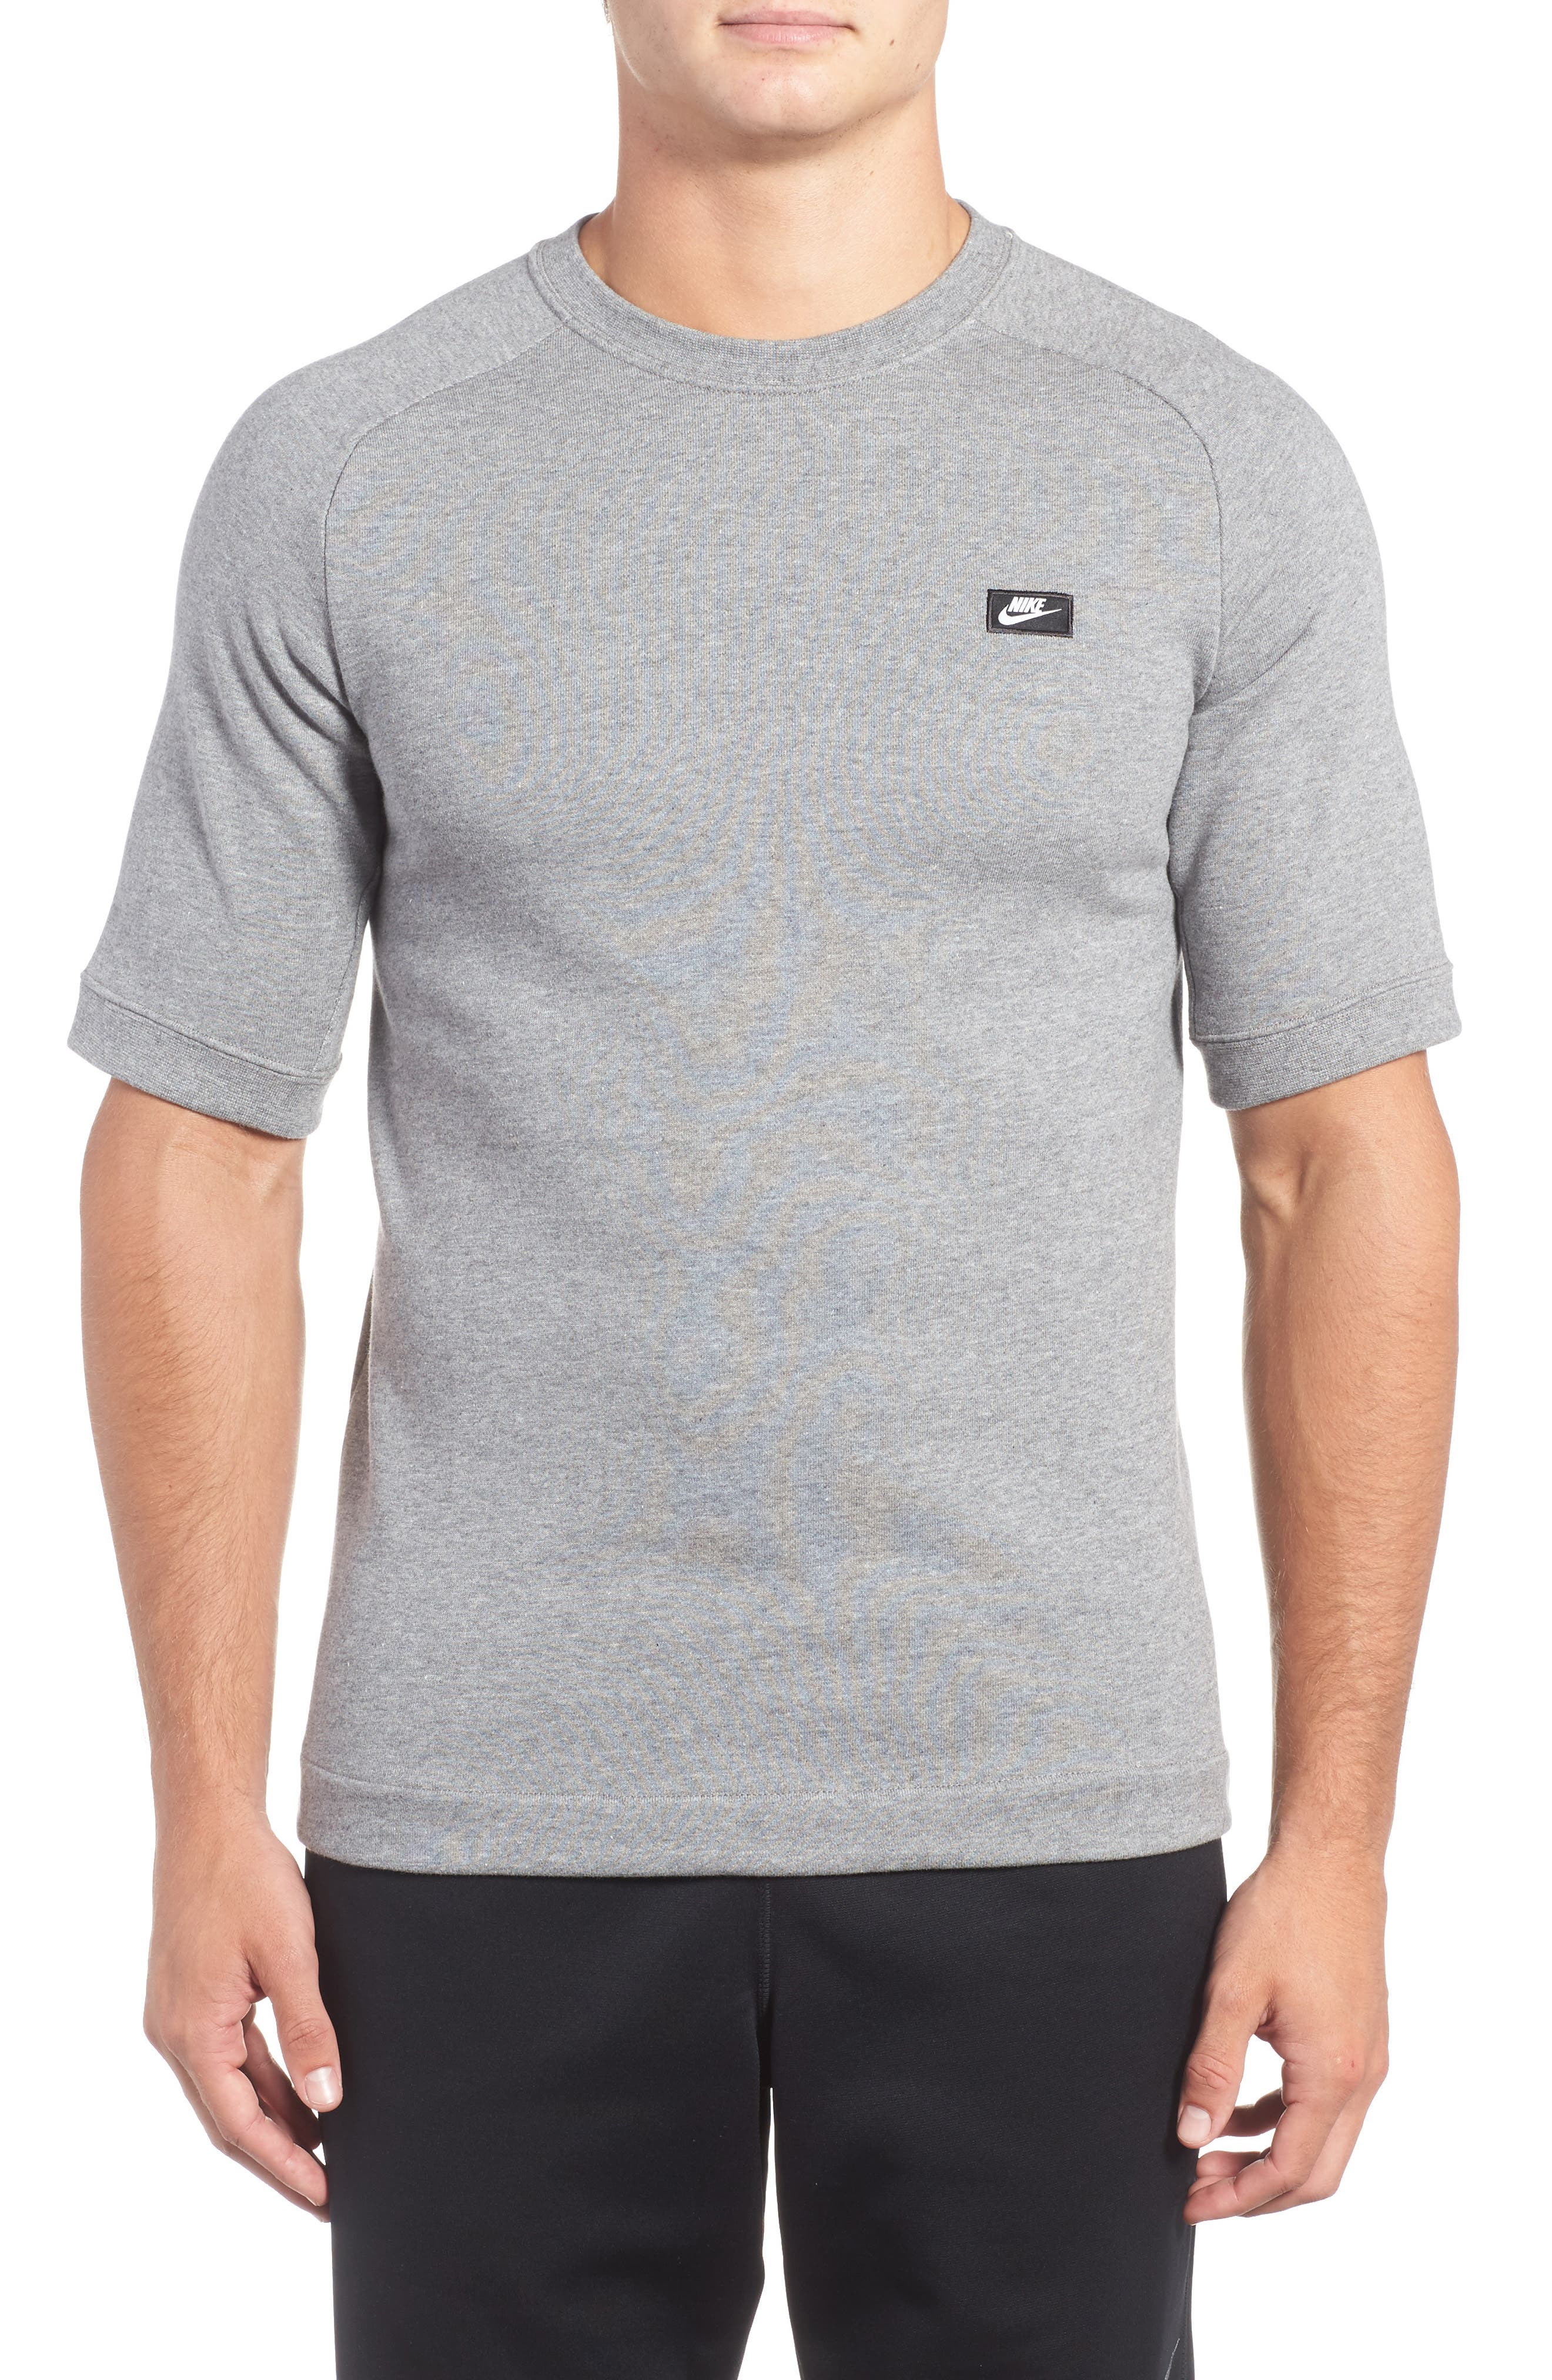 Sportswear Modern Crew T-Shirt,                             Main thumbnail 1, color,